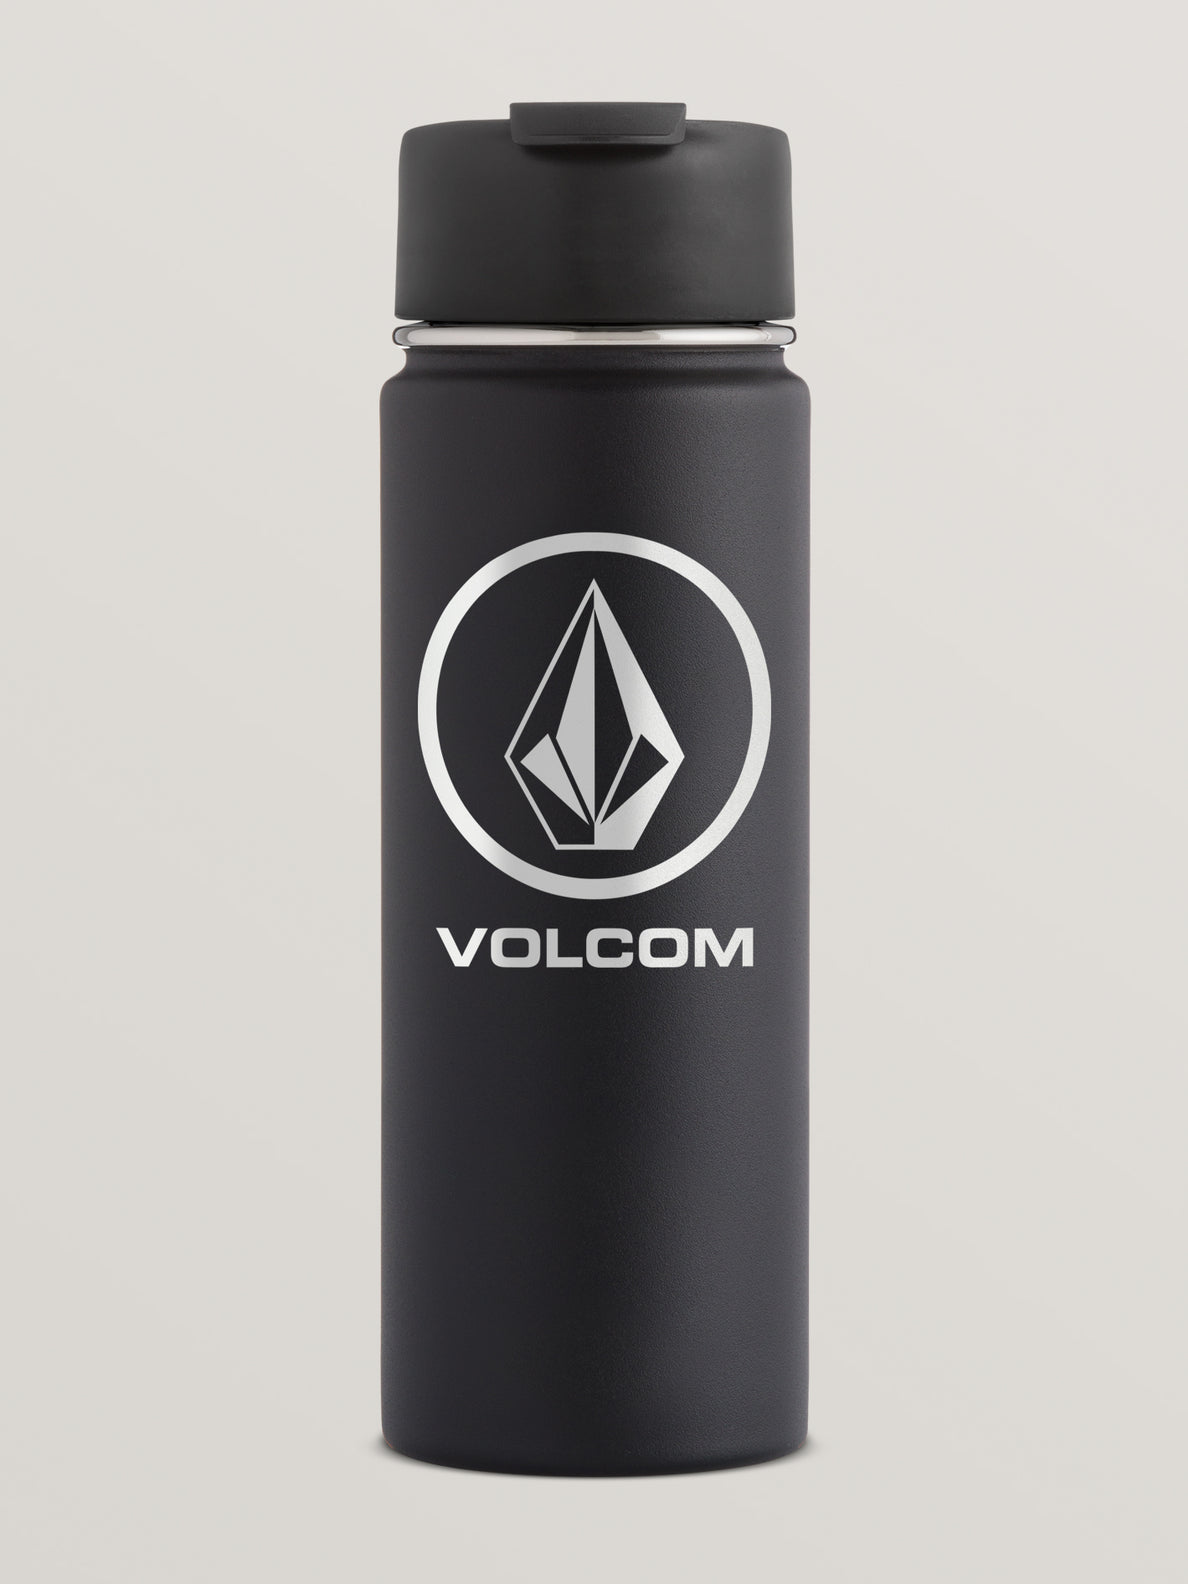 20 Oz Wide Mouth Volcom Hydro Flask - Black